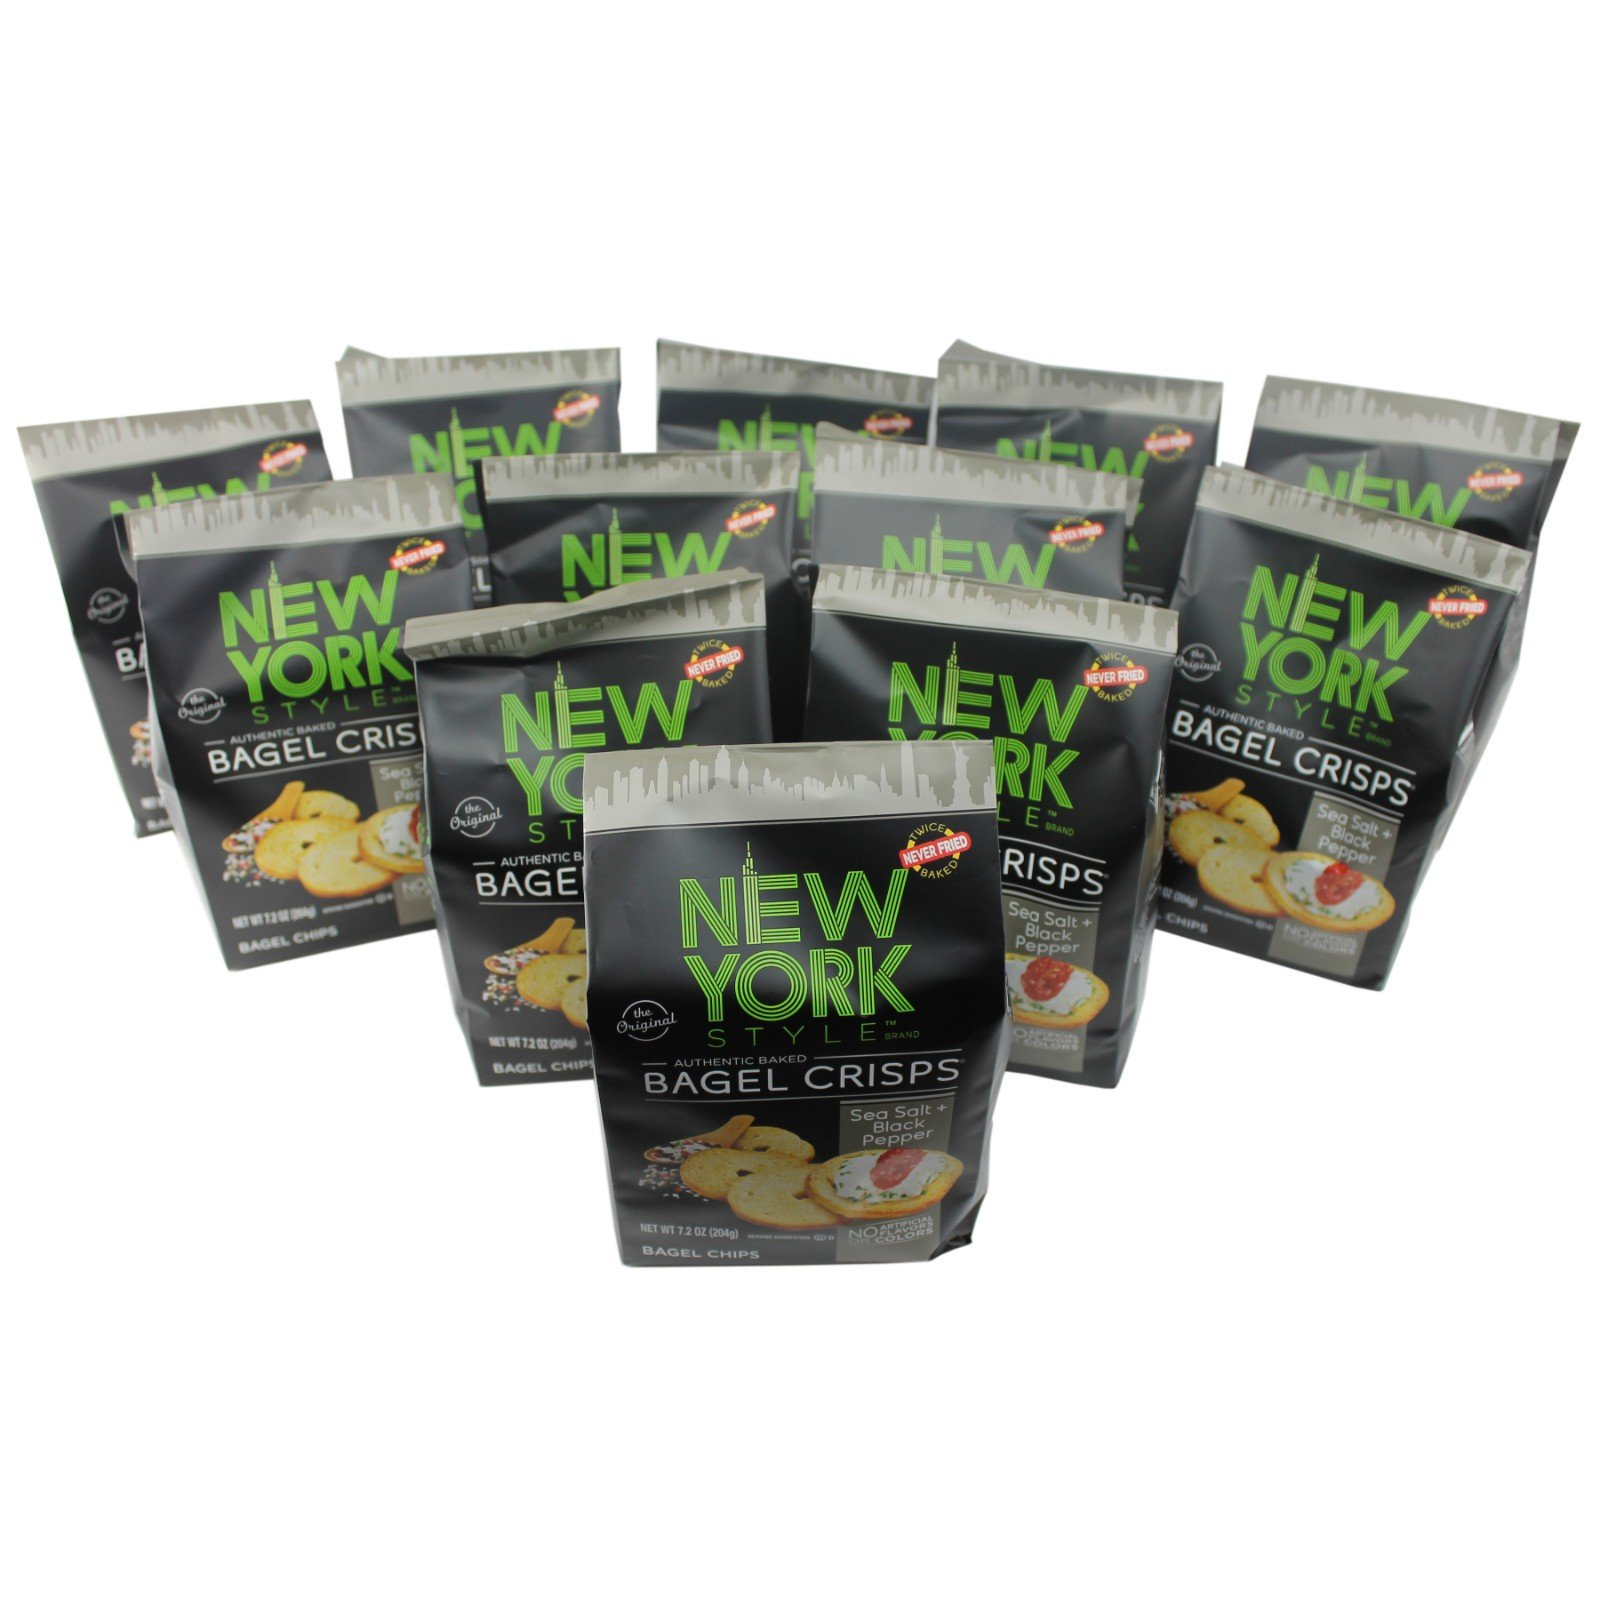 New York Style Bagel Crisps SEA SALT & CRACKED PEPPER, 7.2 Ounce - (Pack of 12) Add Some Crunch To Soup by New York Style